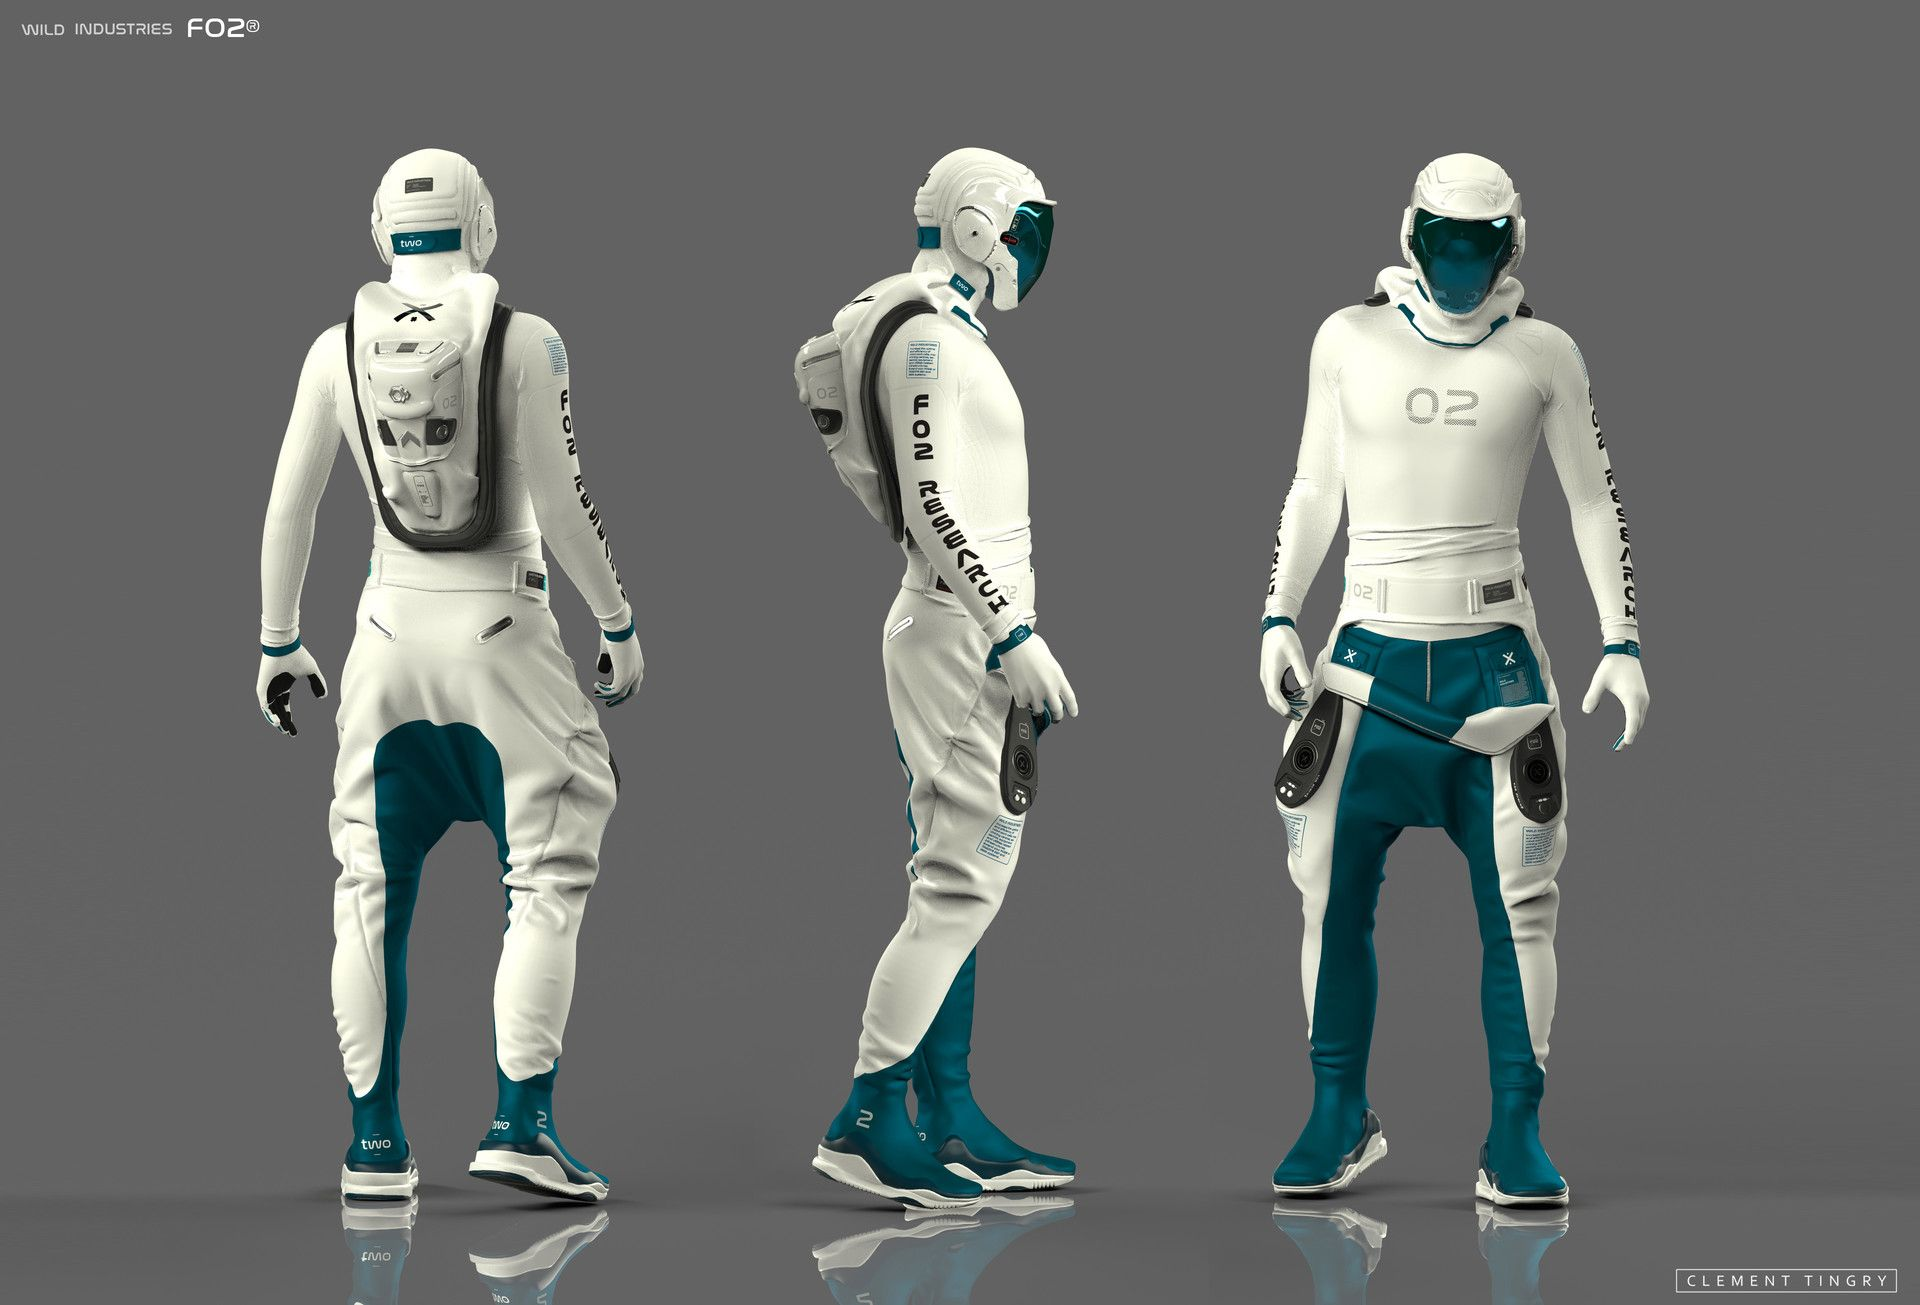 ArtStation - FO2 SpaceSuit SYSTEMS, Clement Tingry ...